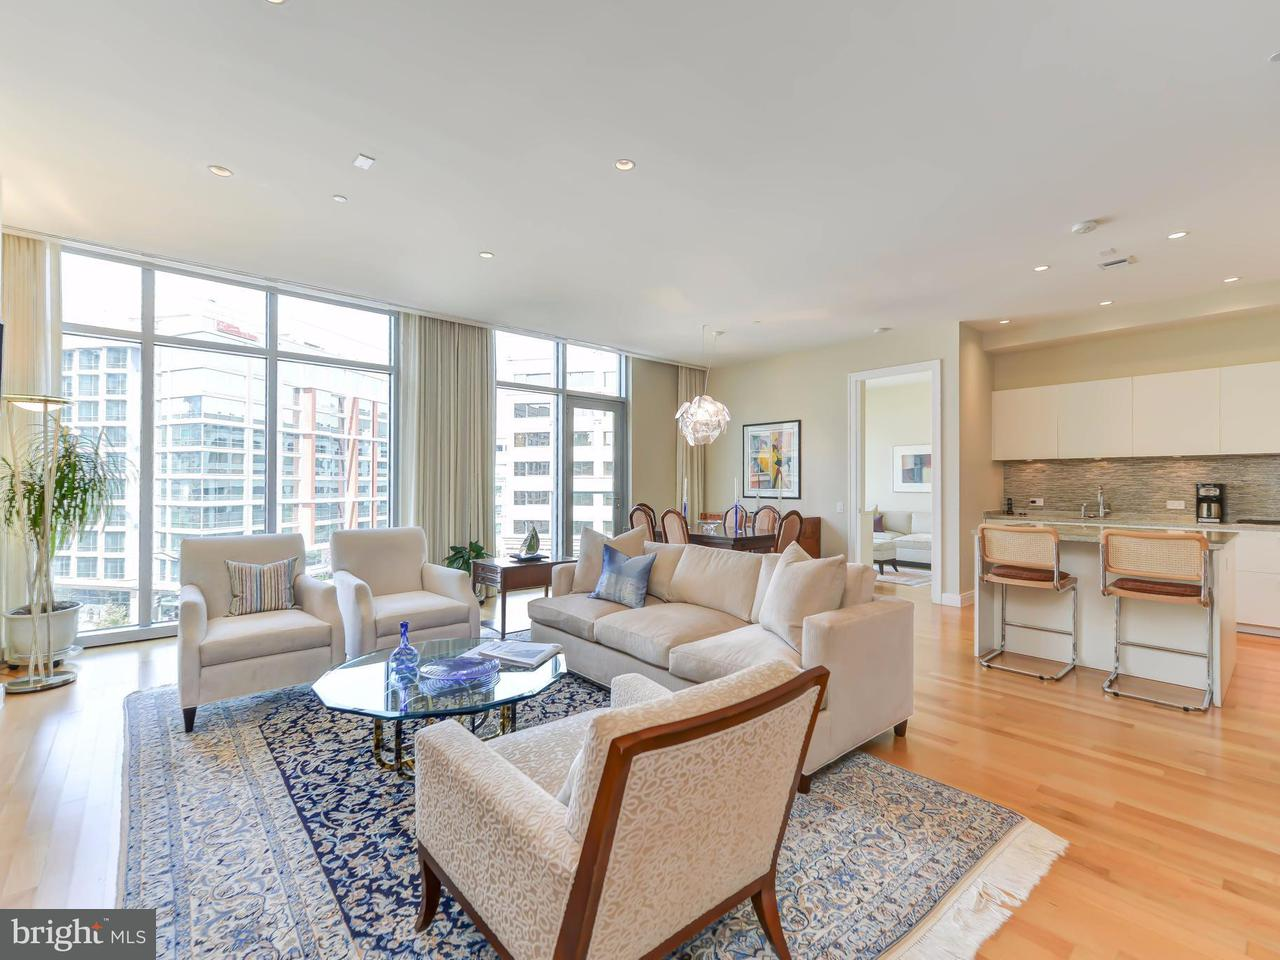 Condominium for Sale at 1177 22nd St Nw #5b 1177 22nd St Nw #5b Washington, District Of Columbia 20037 United States